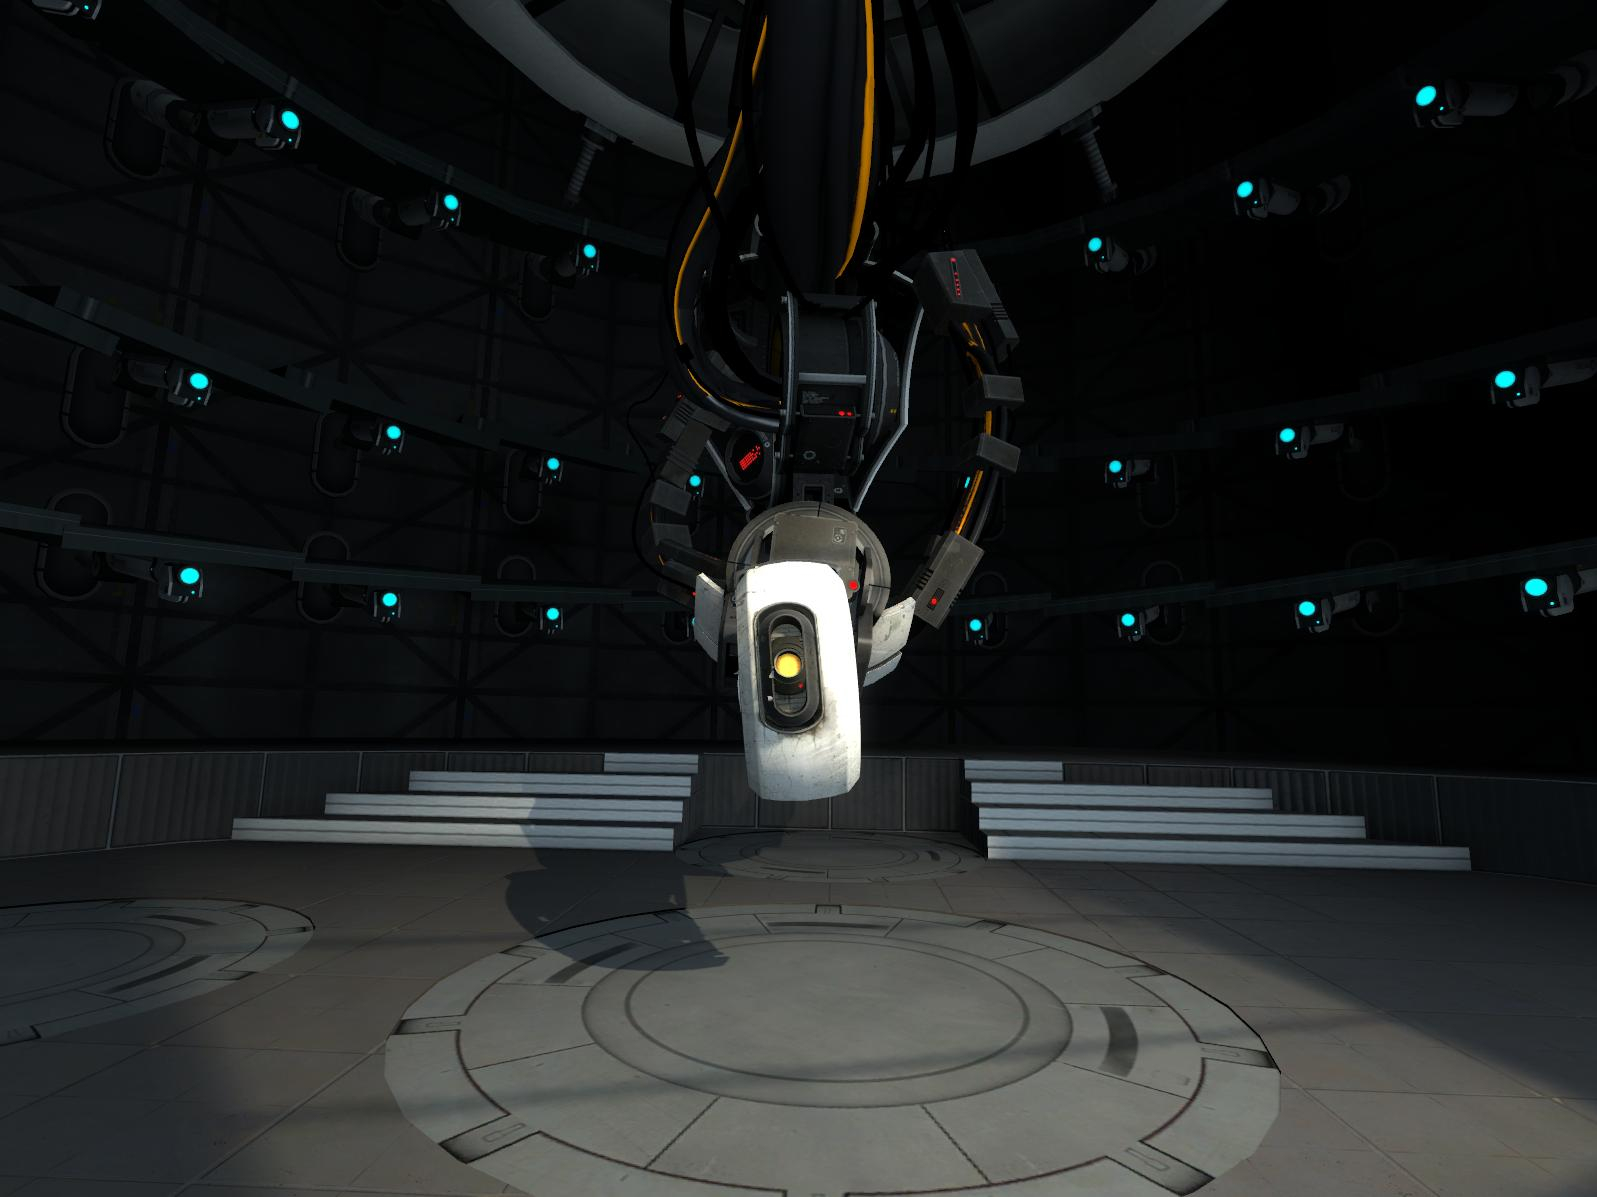 images of Portal 2 Glados Wallpaper Lold Funny Pictures 1597x1197